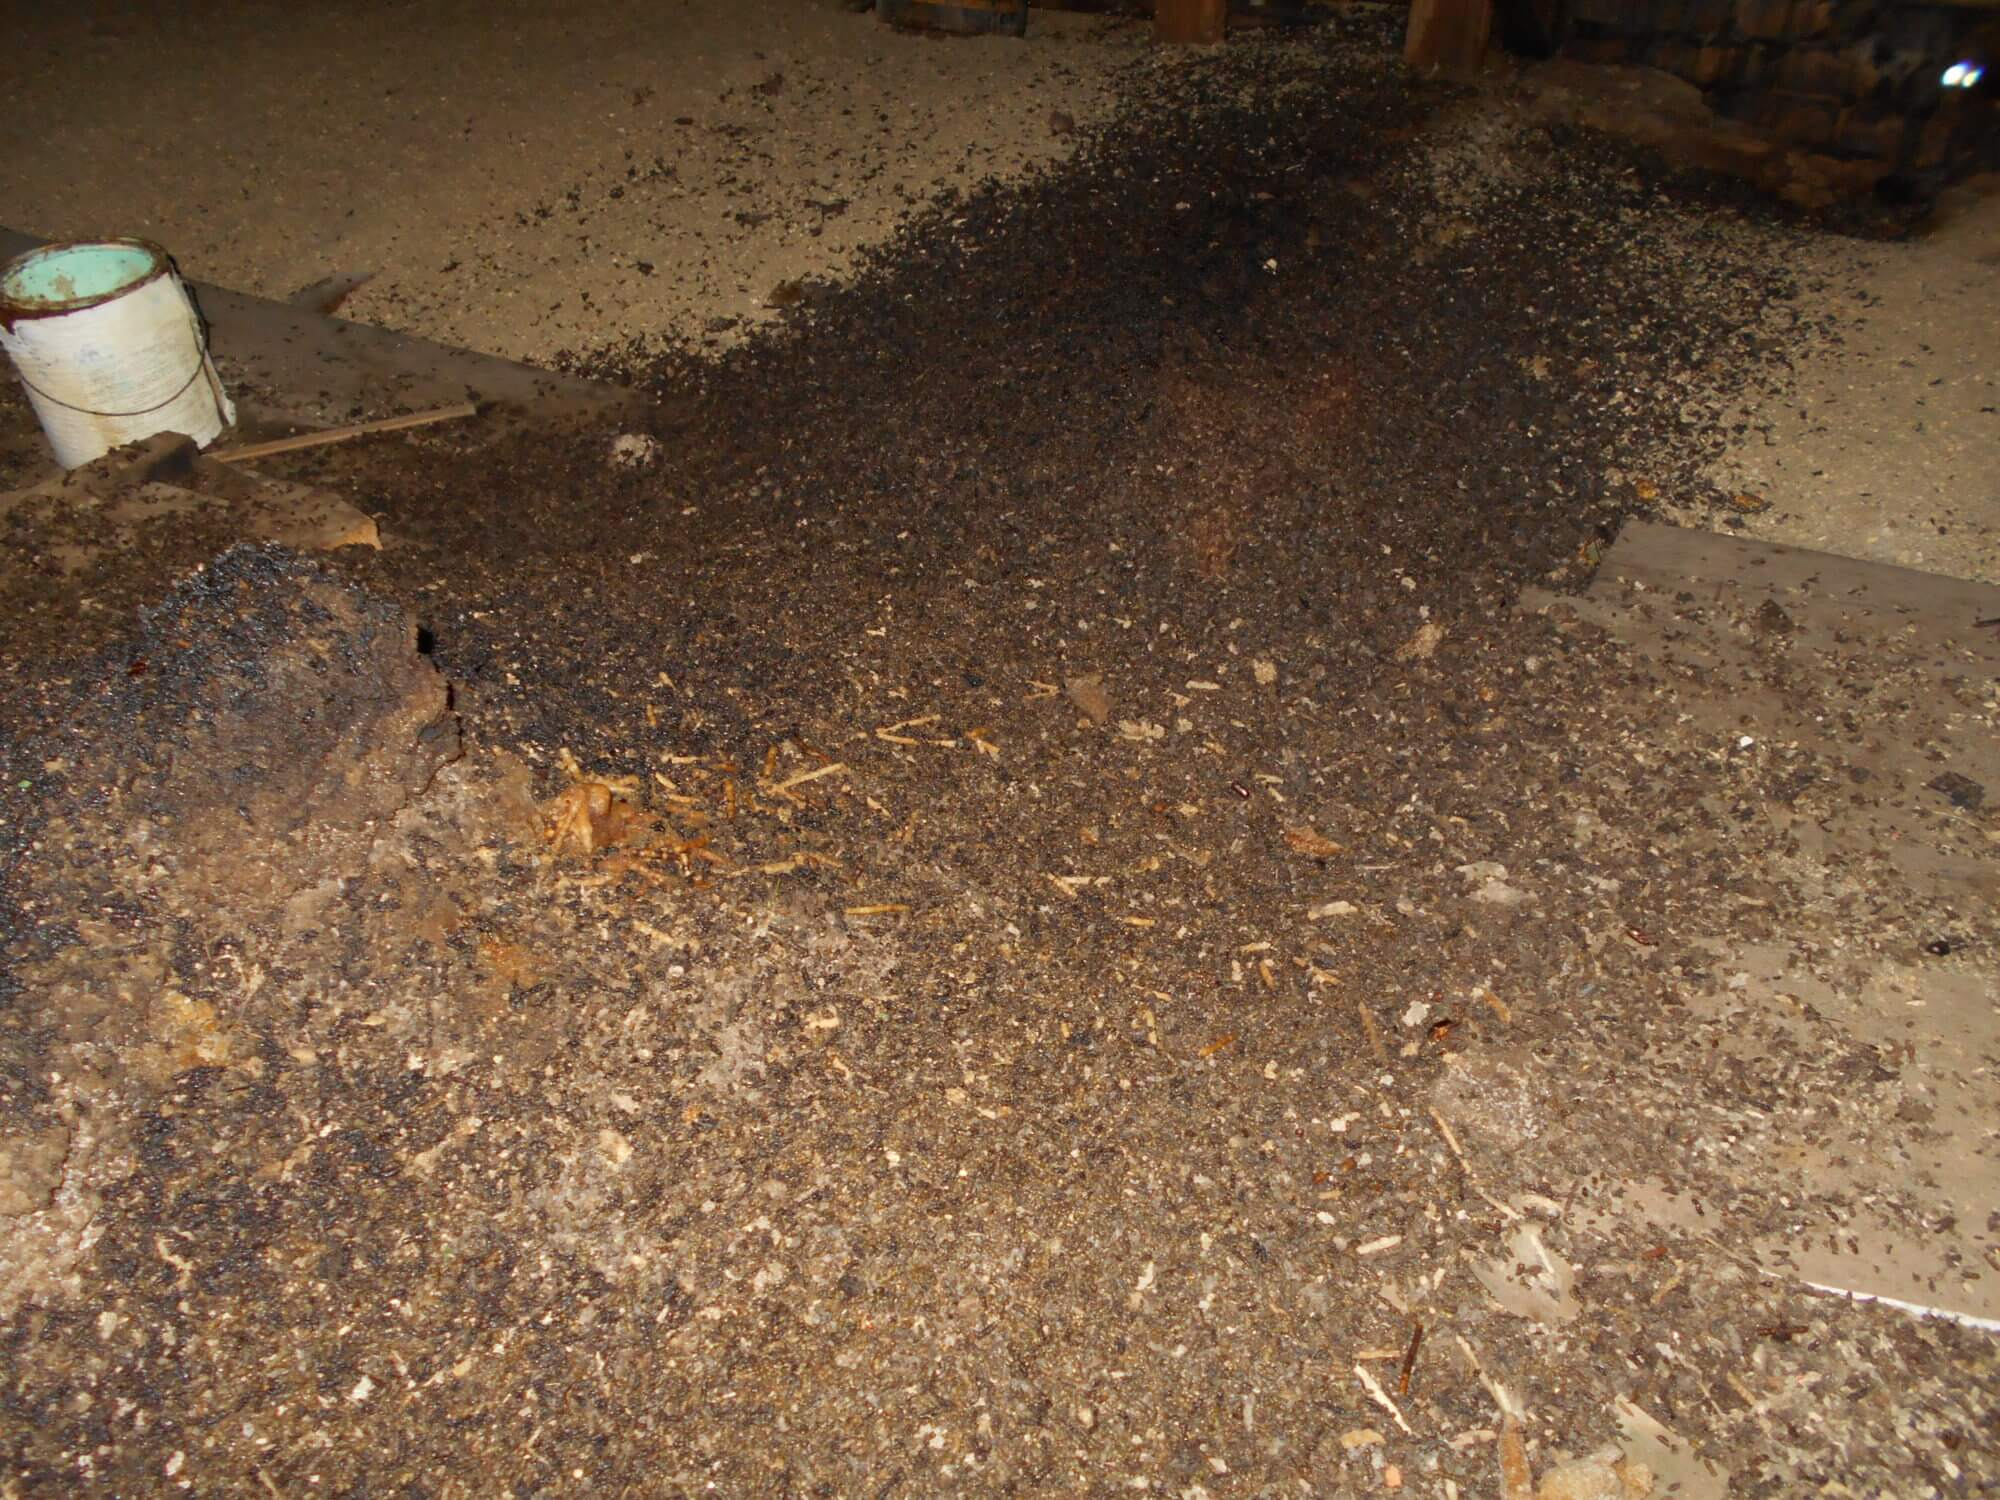 Pictures of bat guano